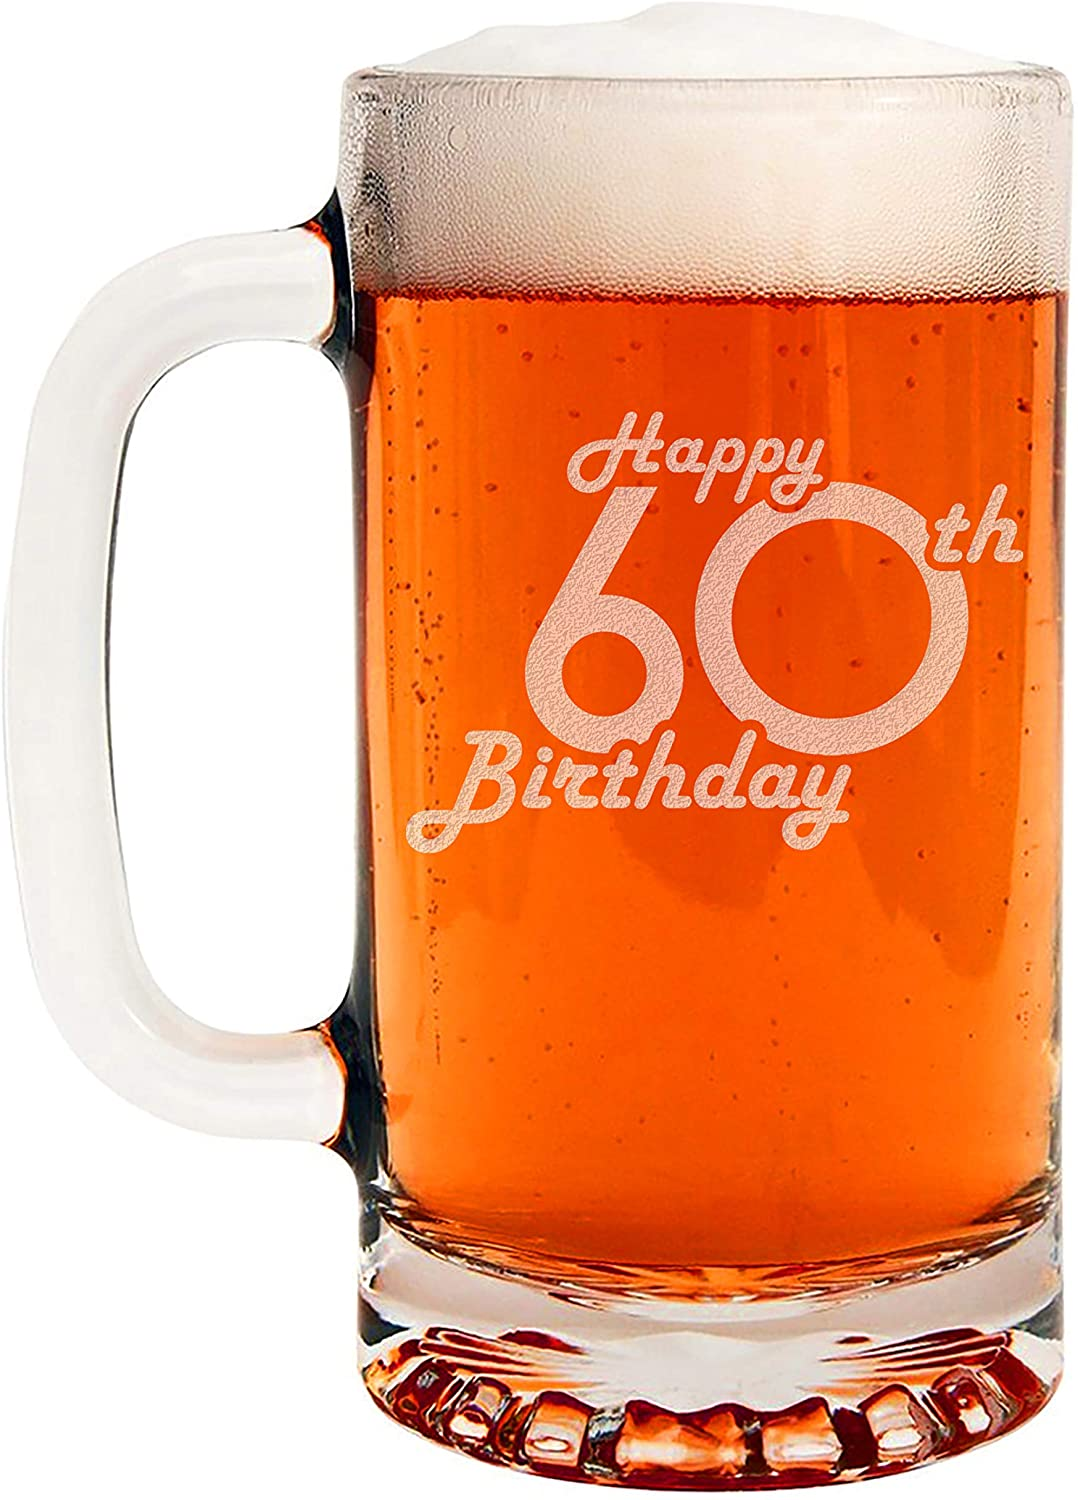 Etched 16oz Glass Beer Mug - Happy 60th Birthday - 60 Years Old Gifts